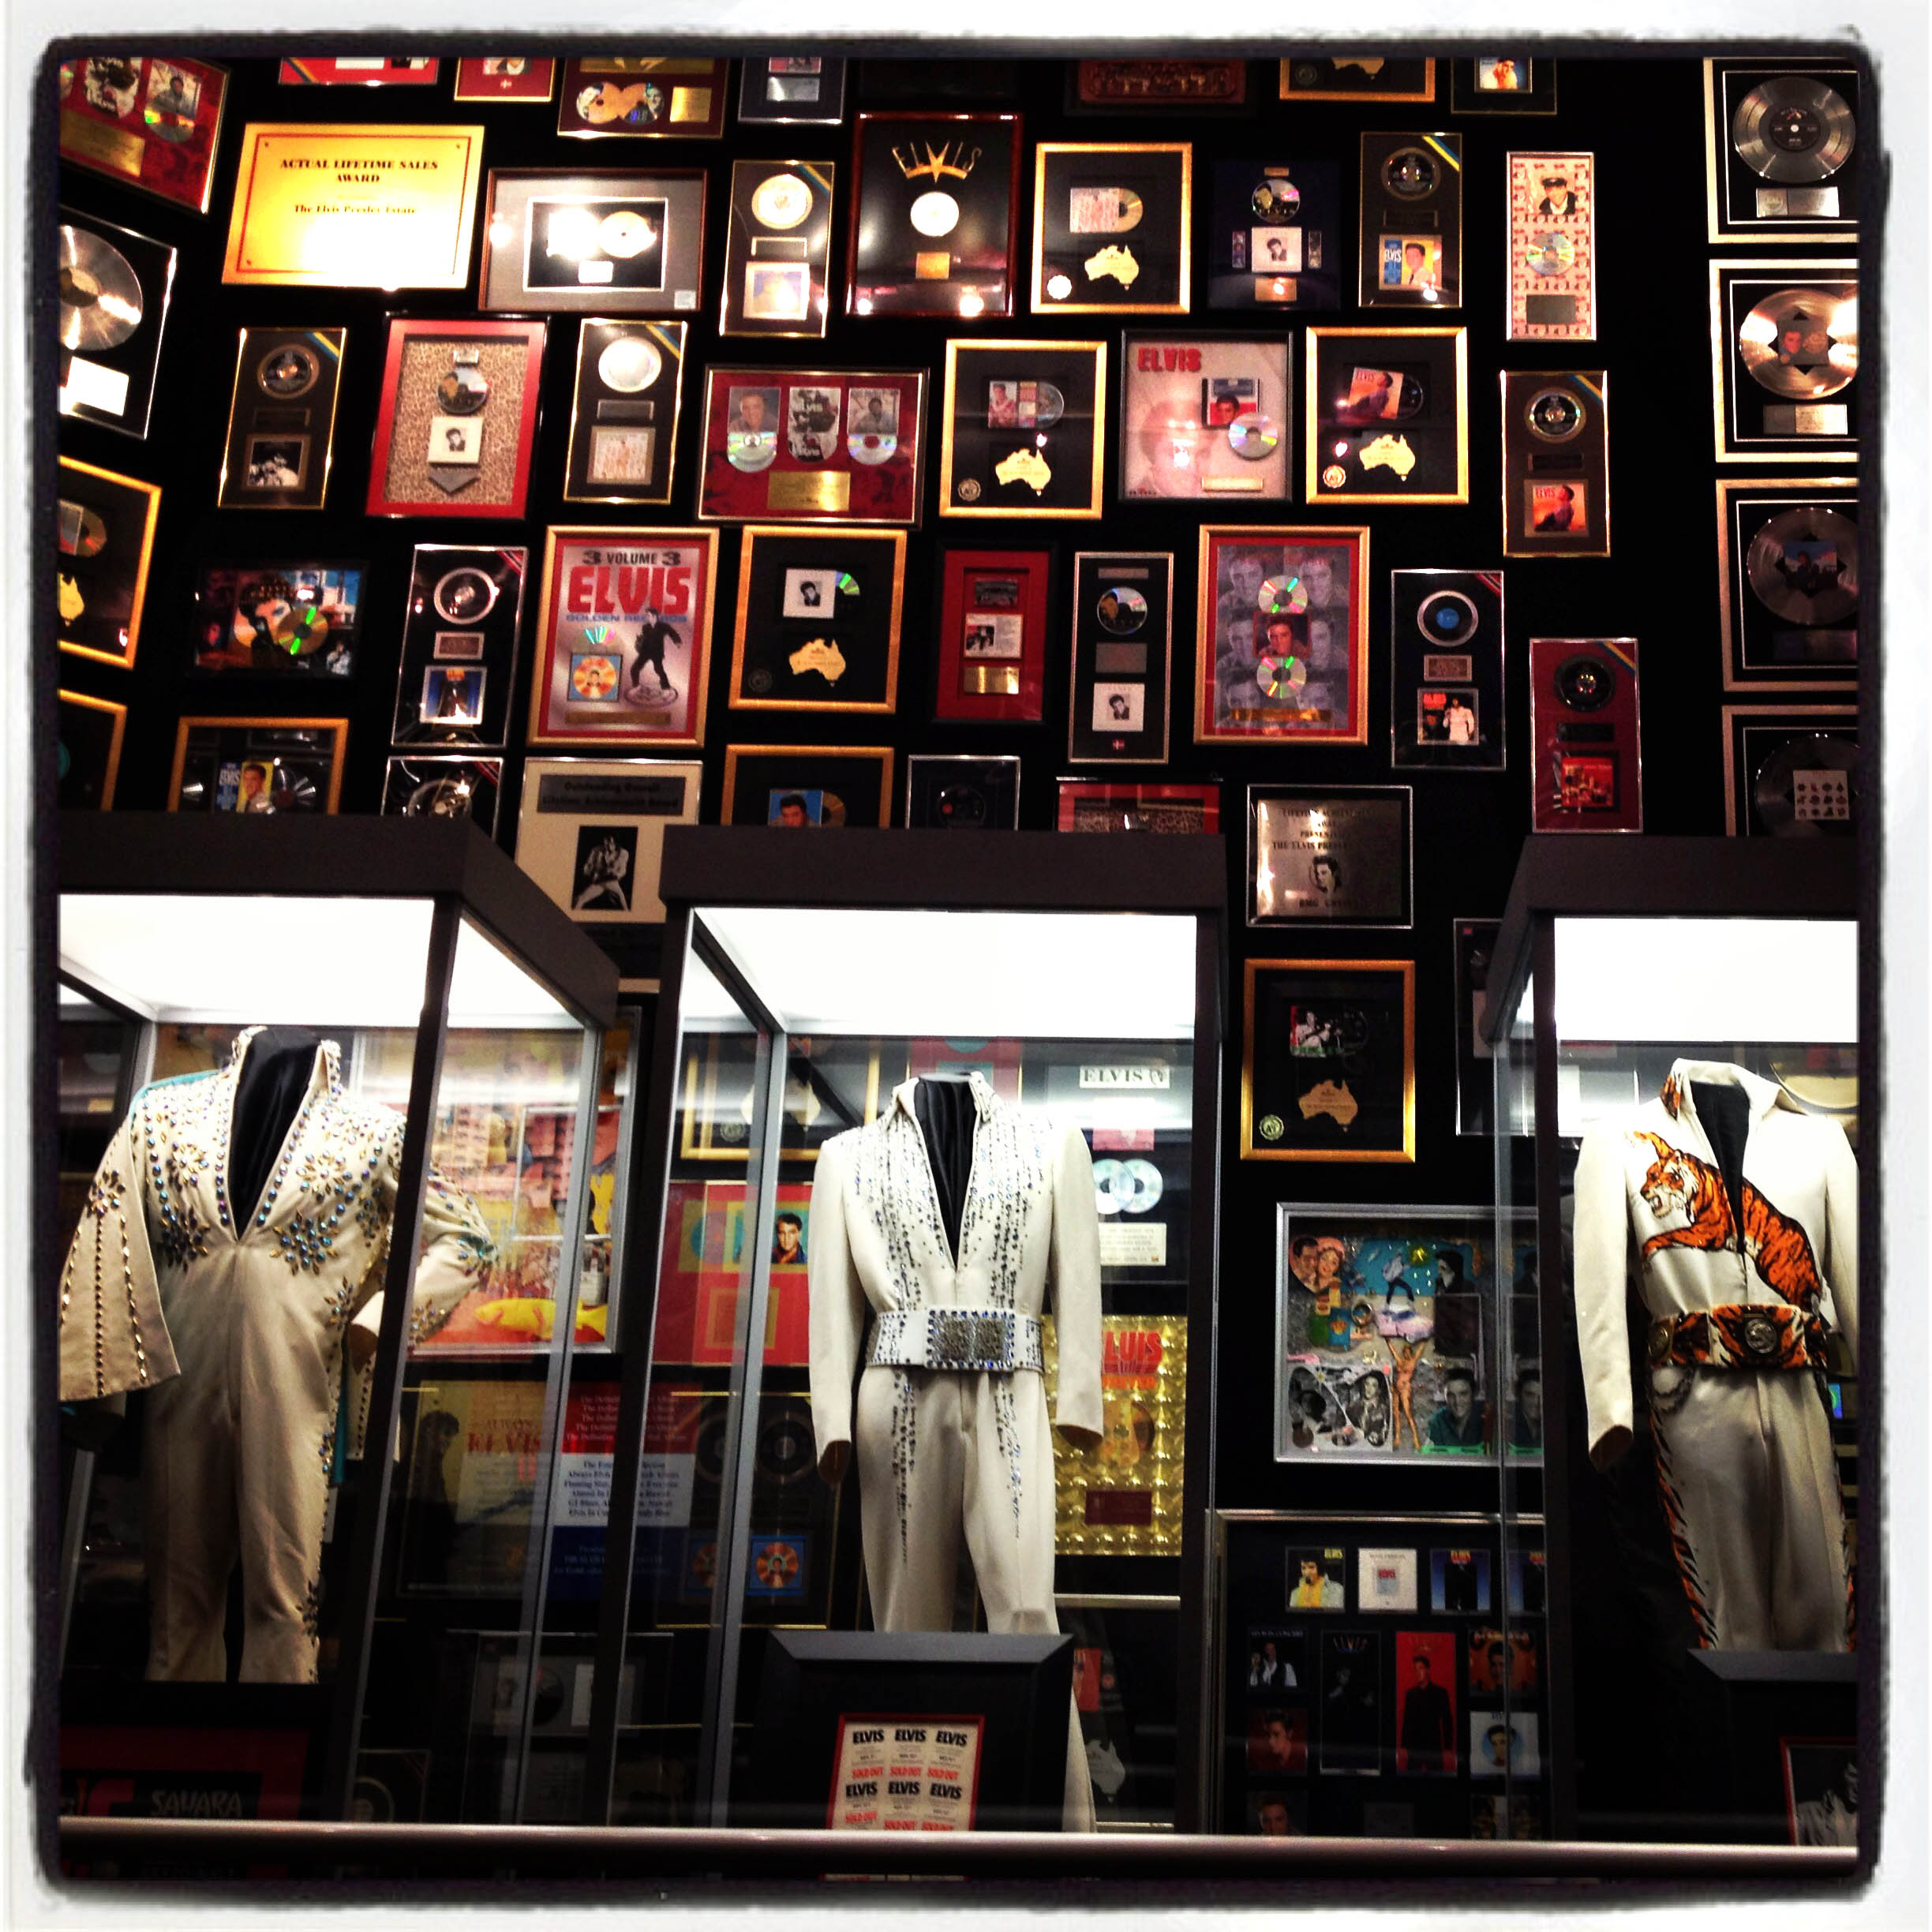 MEMPHIS, TN 01/03/14 The walls of the racketball building on the Graceland grounds are covered with Elvis memorabilia, including several performance costumes.  CLOE POISSON|cpoisson@courant.com